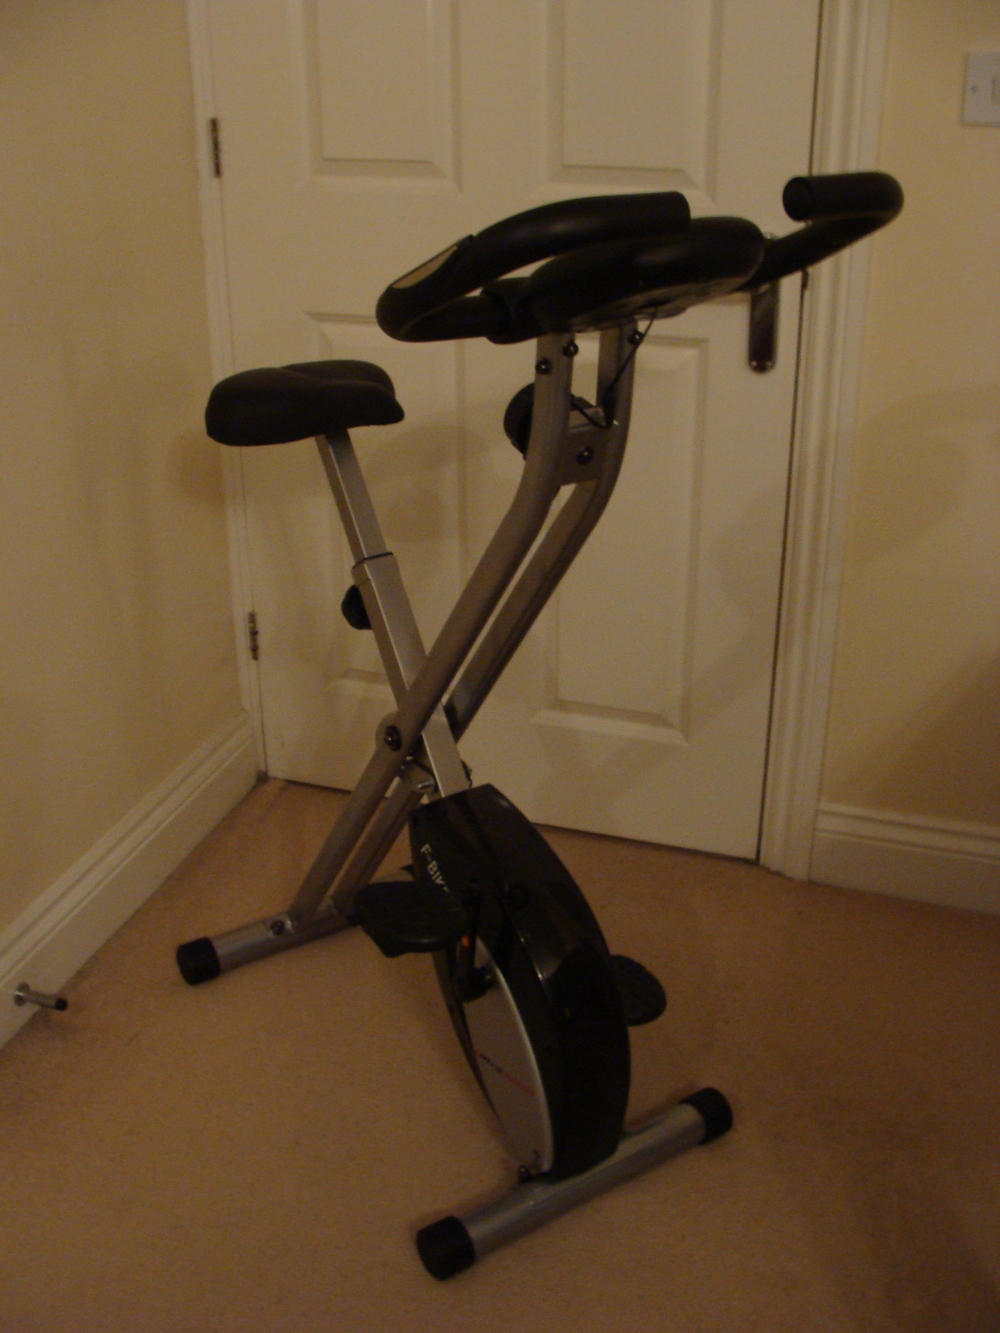 Looks a bit minimal for an exercise bike - but that's its power (I hope)